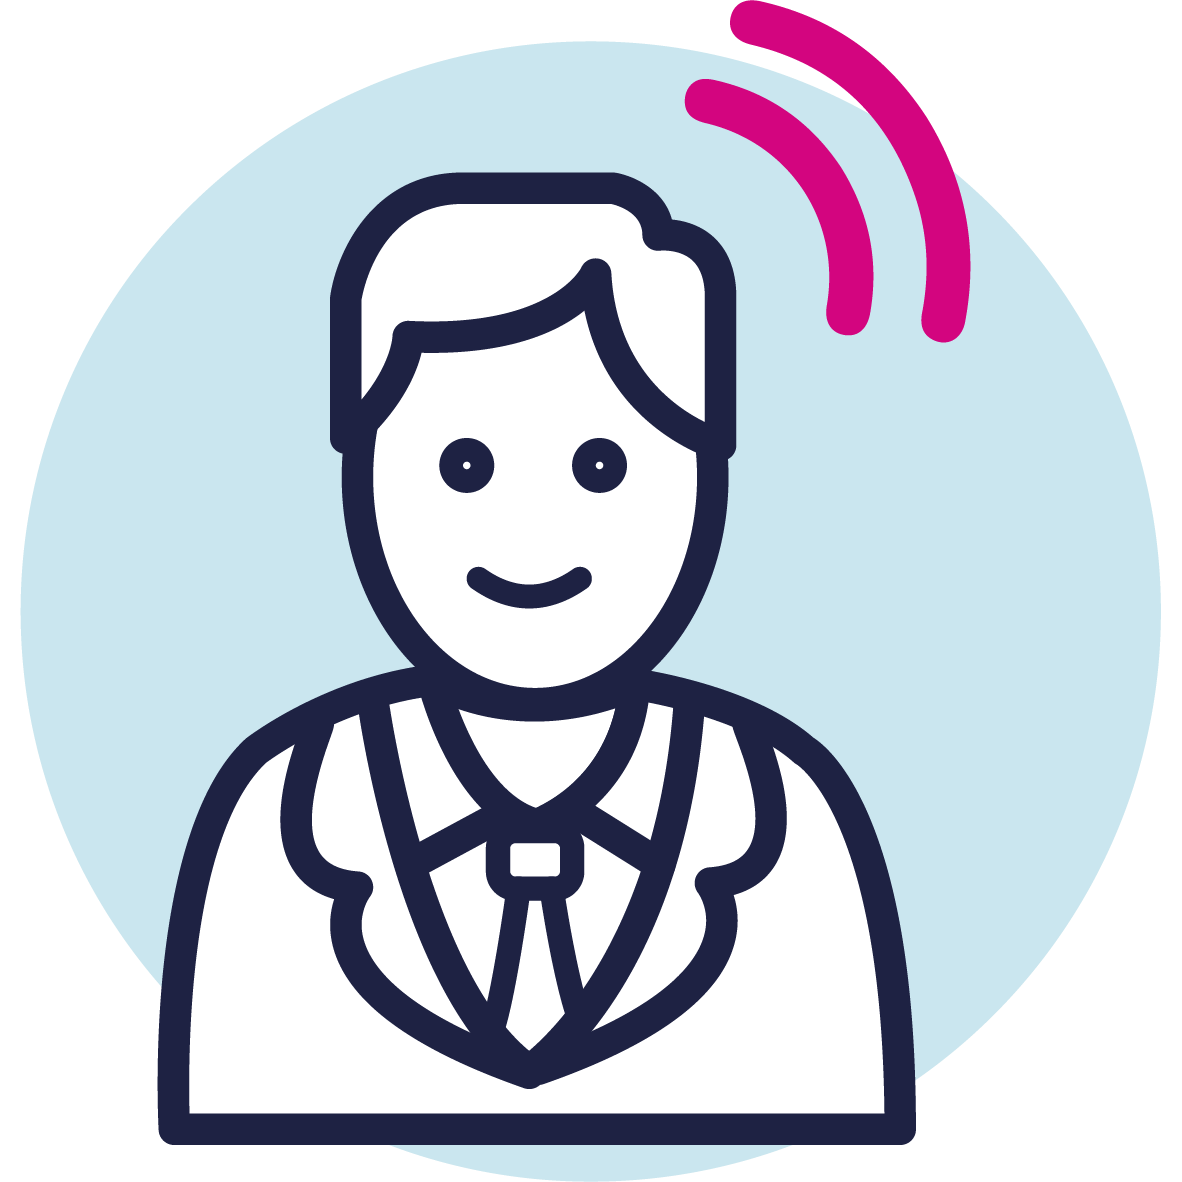 Trained and experienced audiologists support your hearing needs